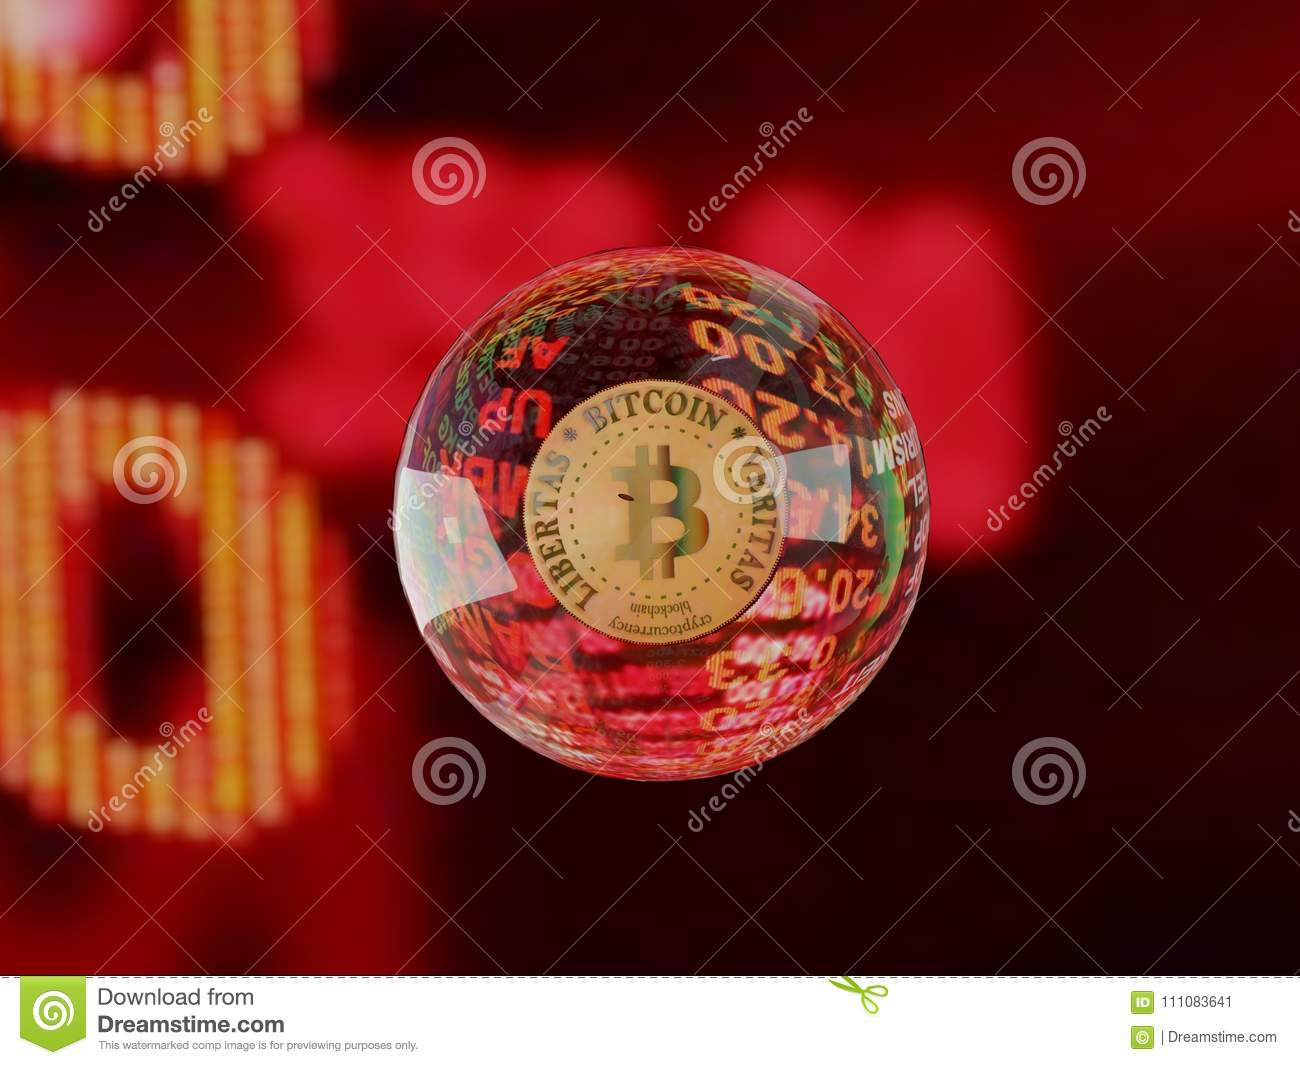 Bitcoin Bubble cryptocurrency